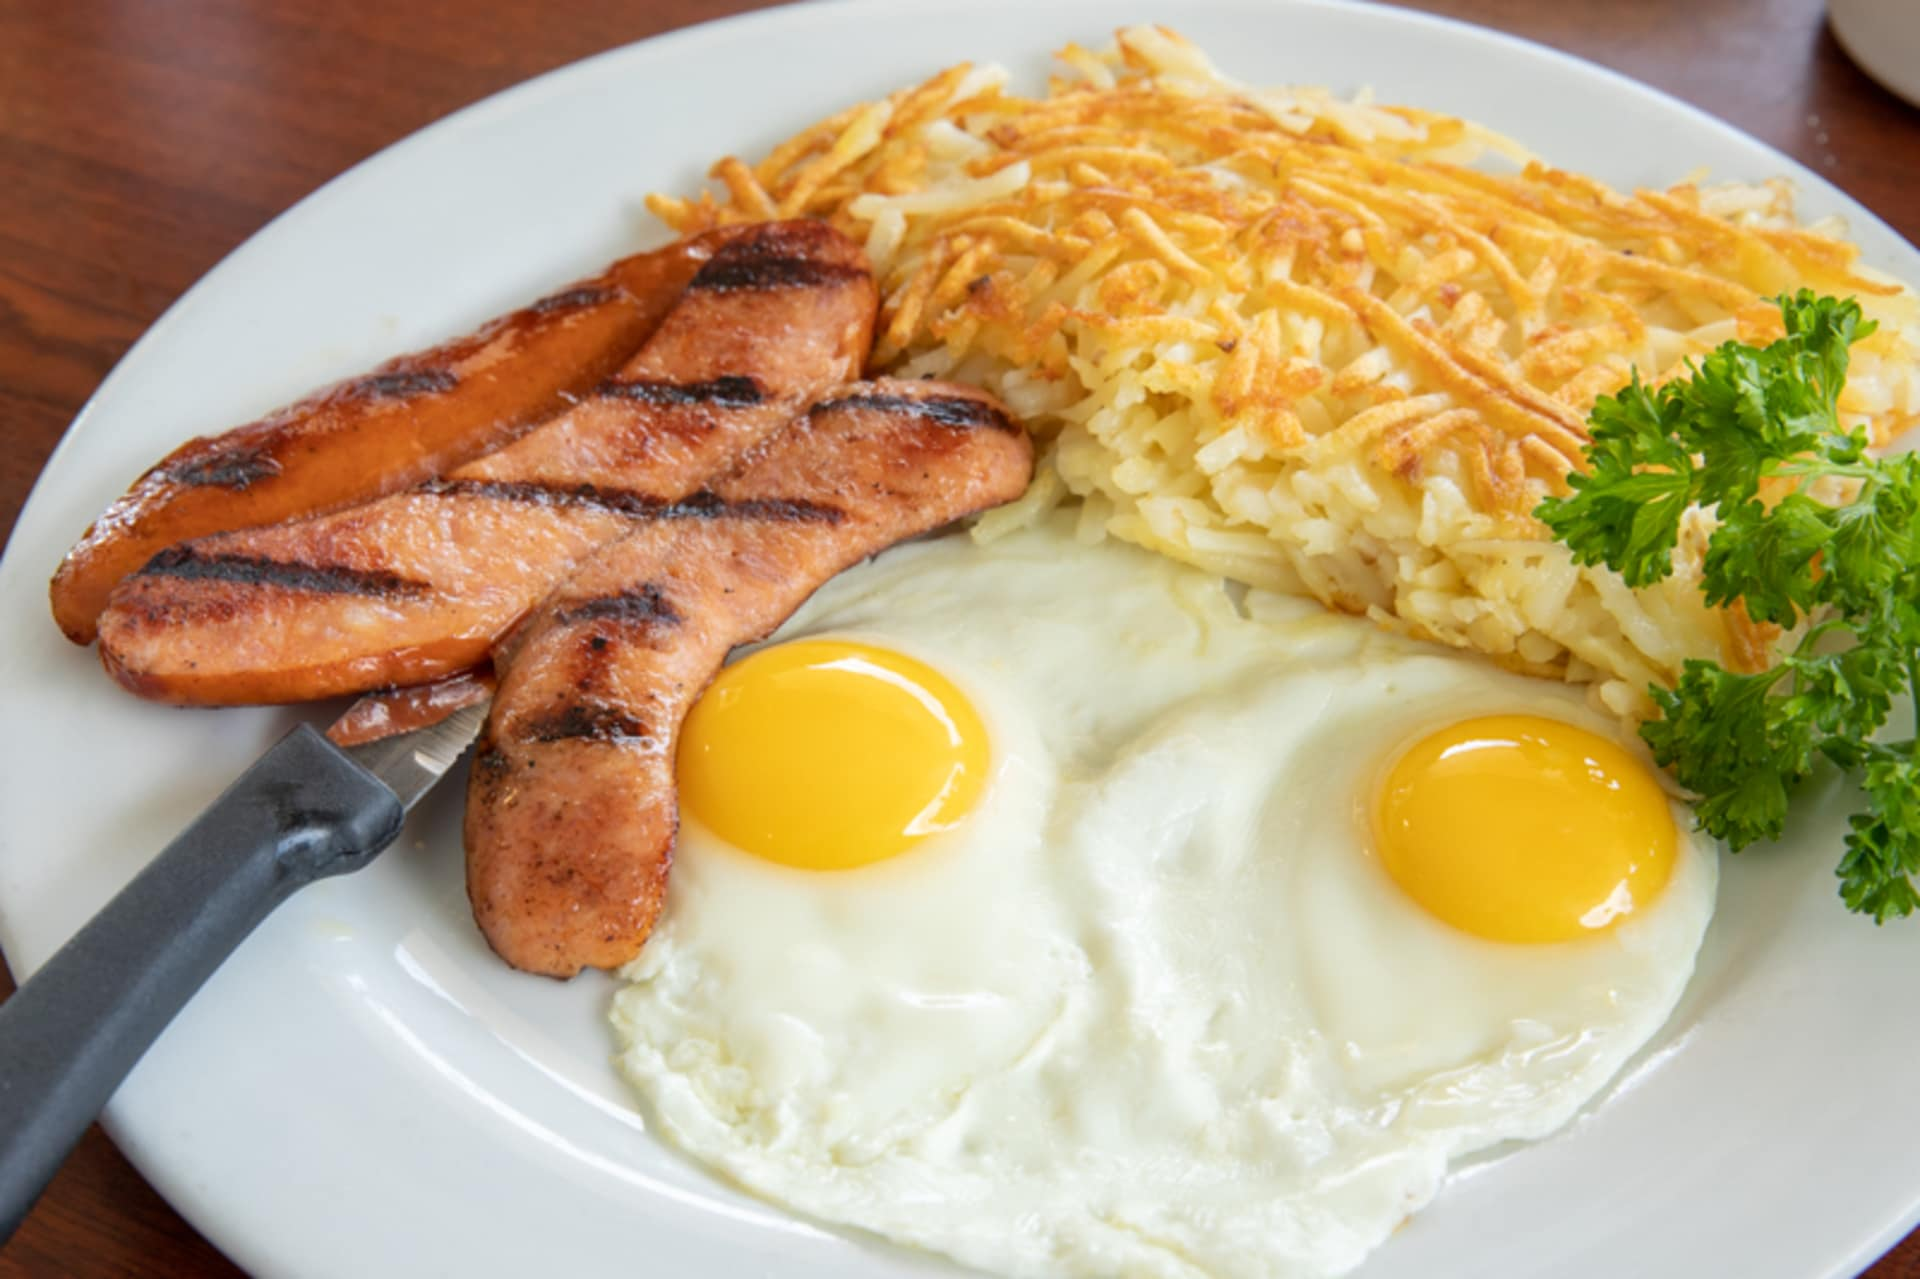 Thursday - Polish Sausage or Hot Links & Eggs